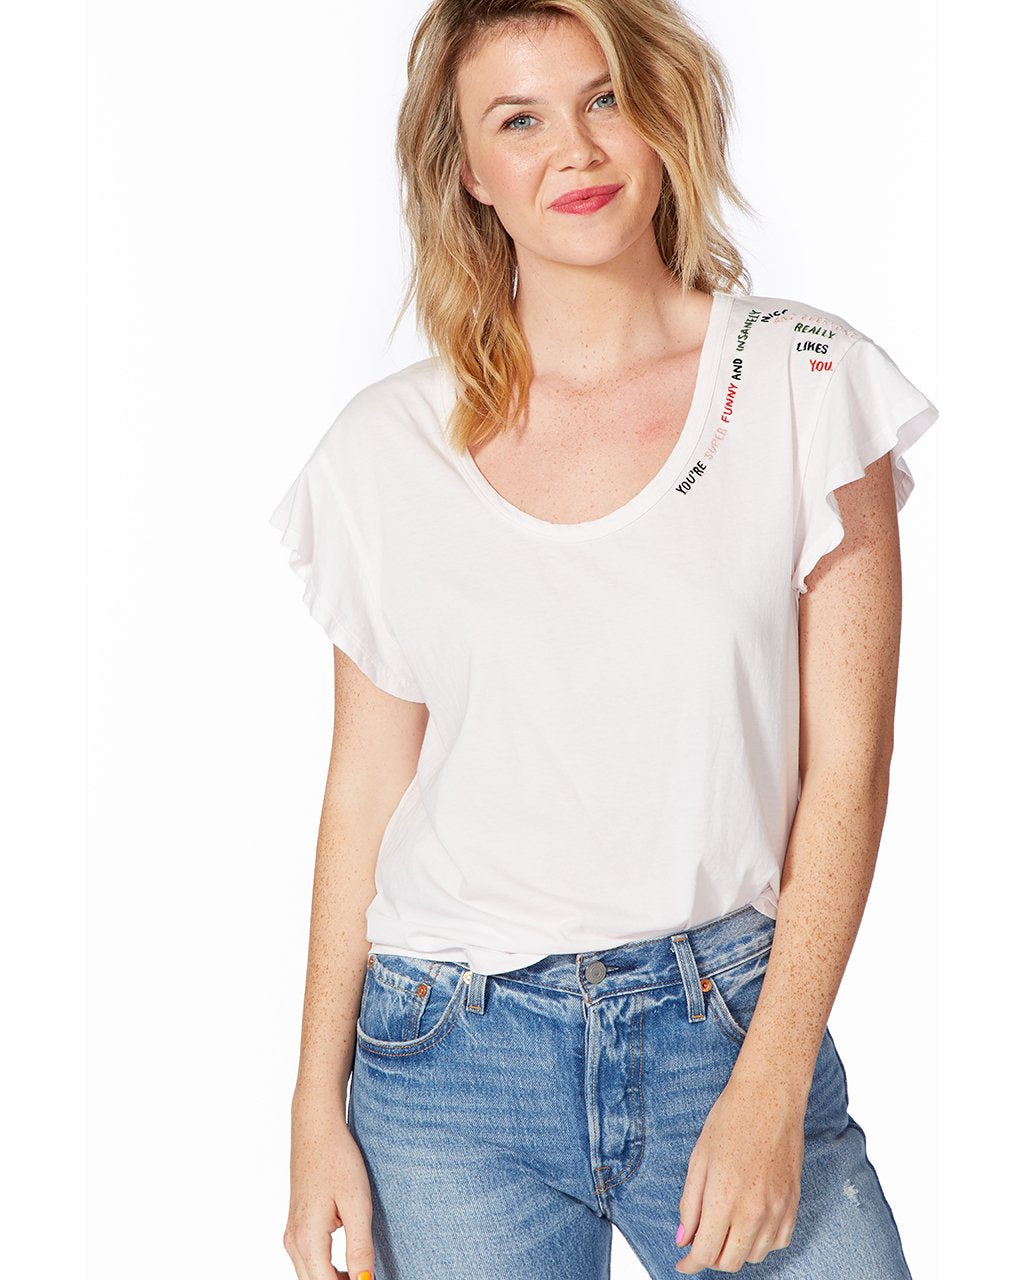 8f4be61bbc3 Compliment Ruffle Tee